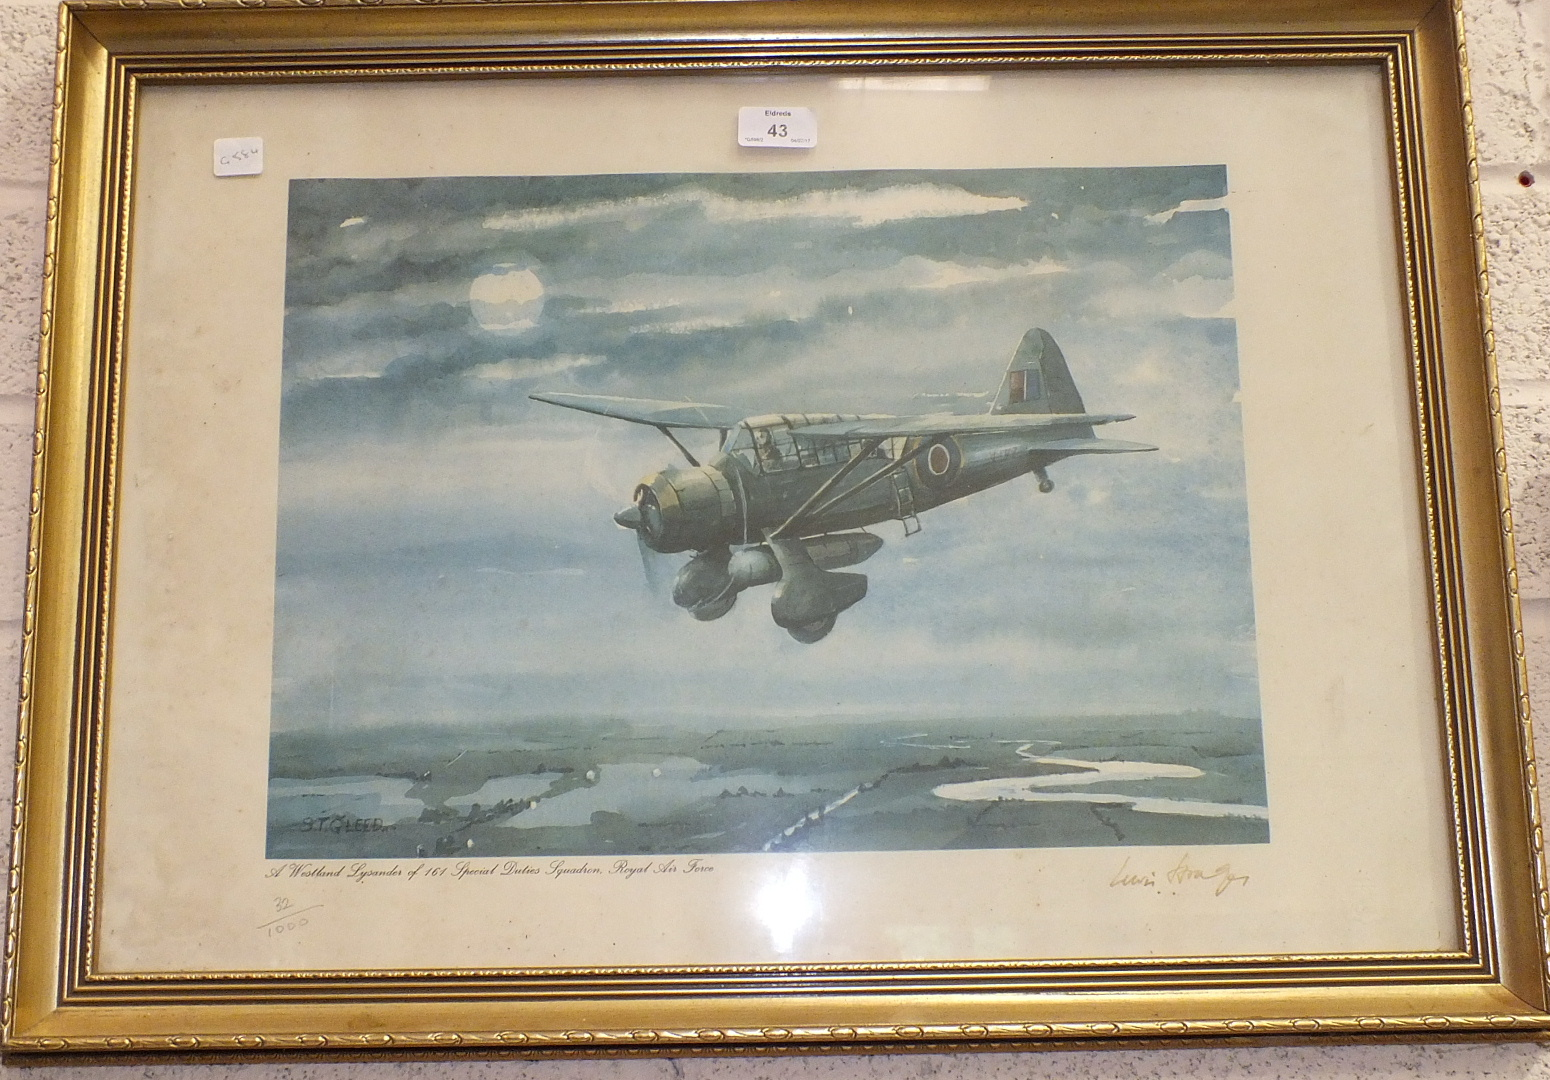 Lot 43 - After S T Gleed, 'A Westland Lysander of 161 Special Duties Squadron, Royal Air Force', a limited